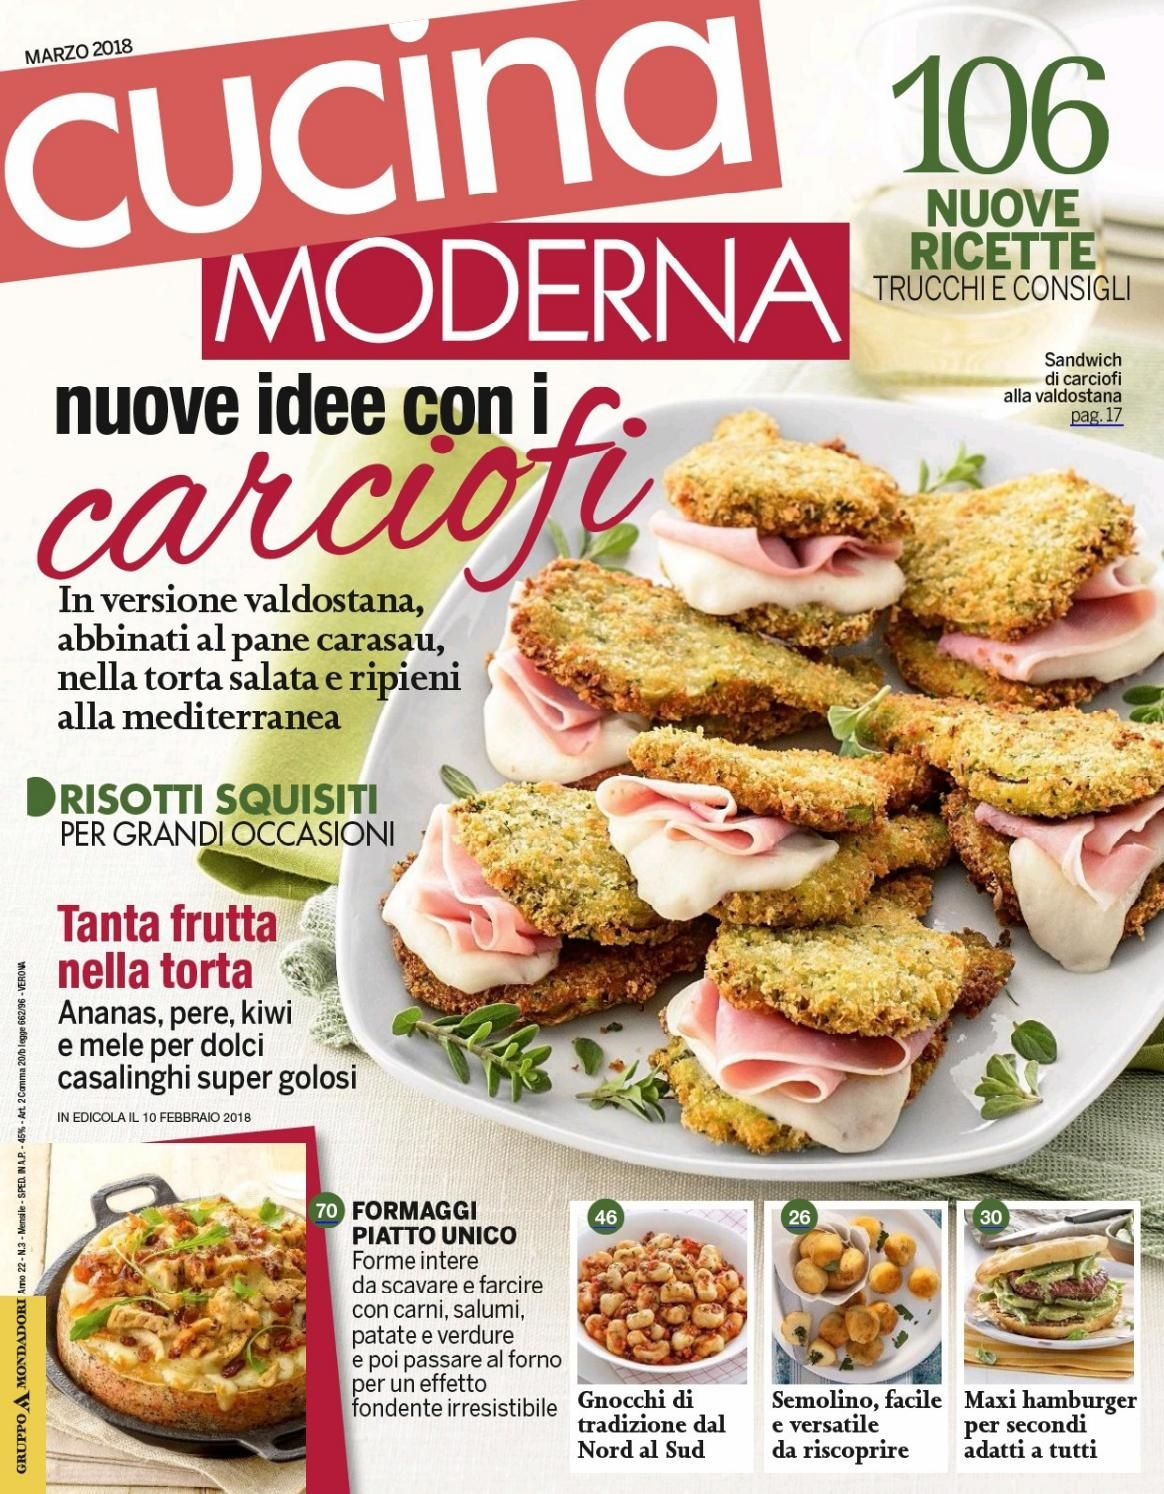 Rivista Cucina Moderna Cucina Moderna Marzo 2018 Magazines Easy Dinner Recipes